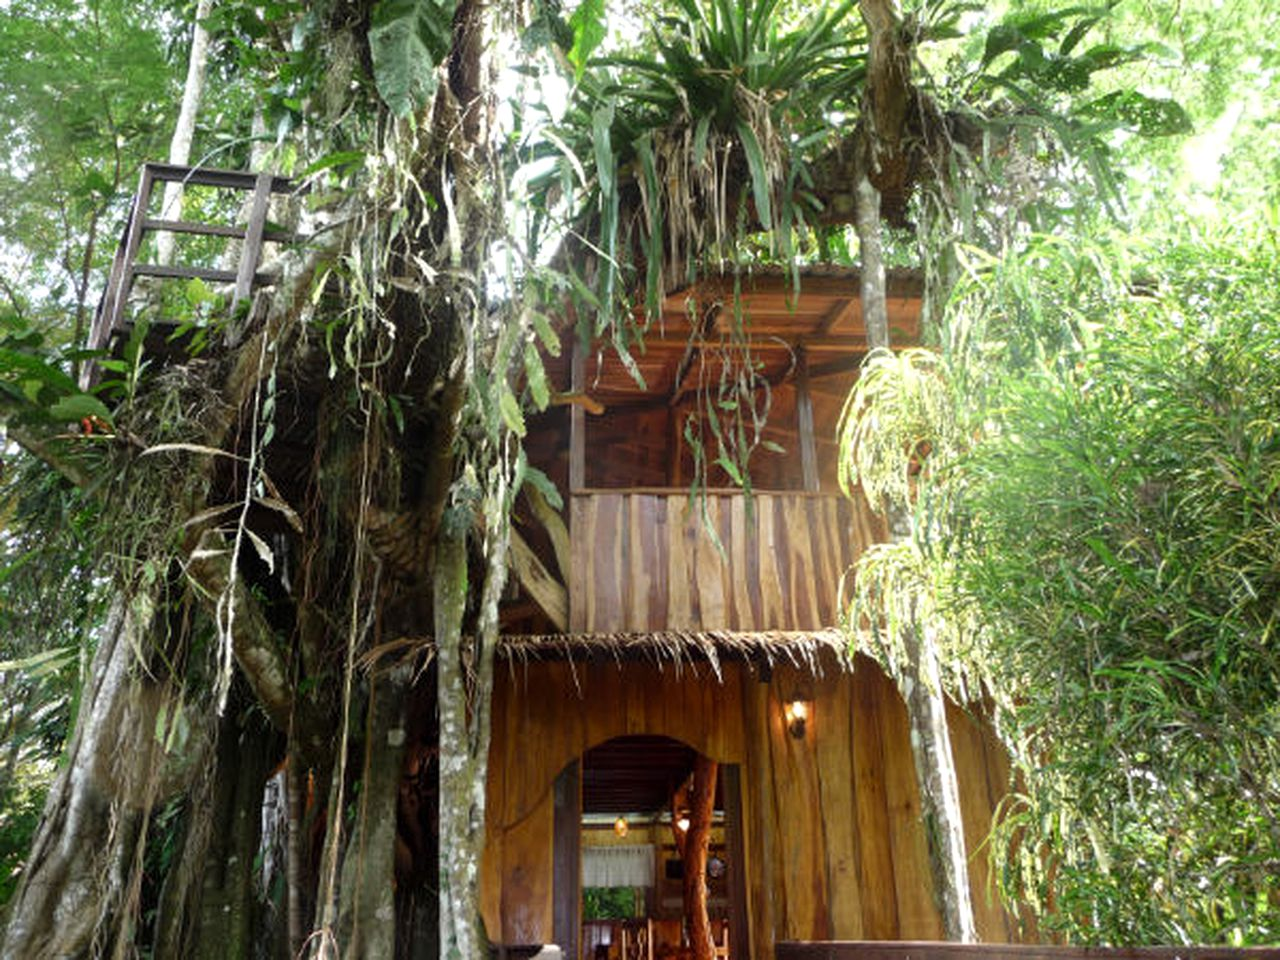 Tree Houses (Cahuita, Limón, Costa Rica)